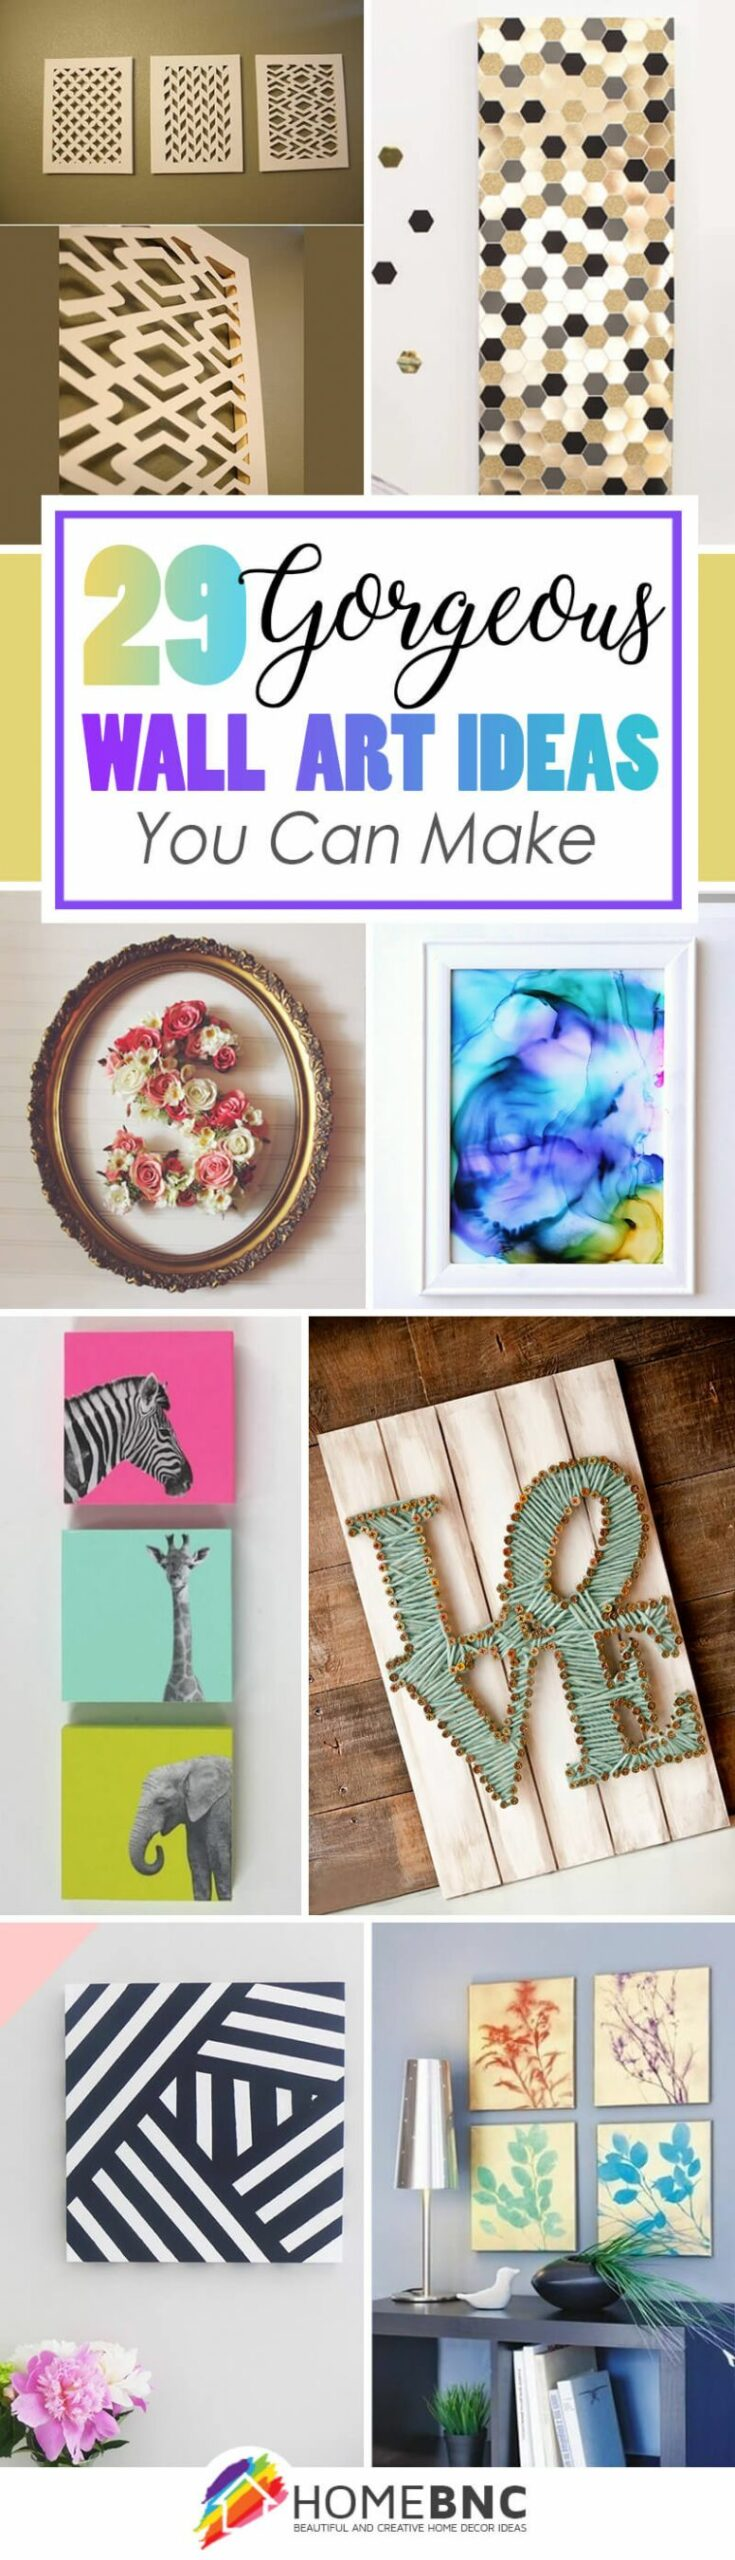 10 Best DIY Wall Art Ideas (Designs and Decorations) for 10 - wall decor ideas homemade